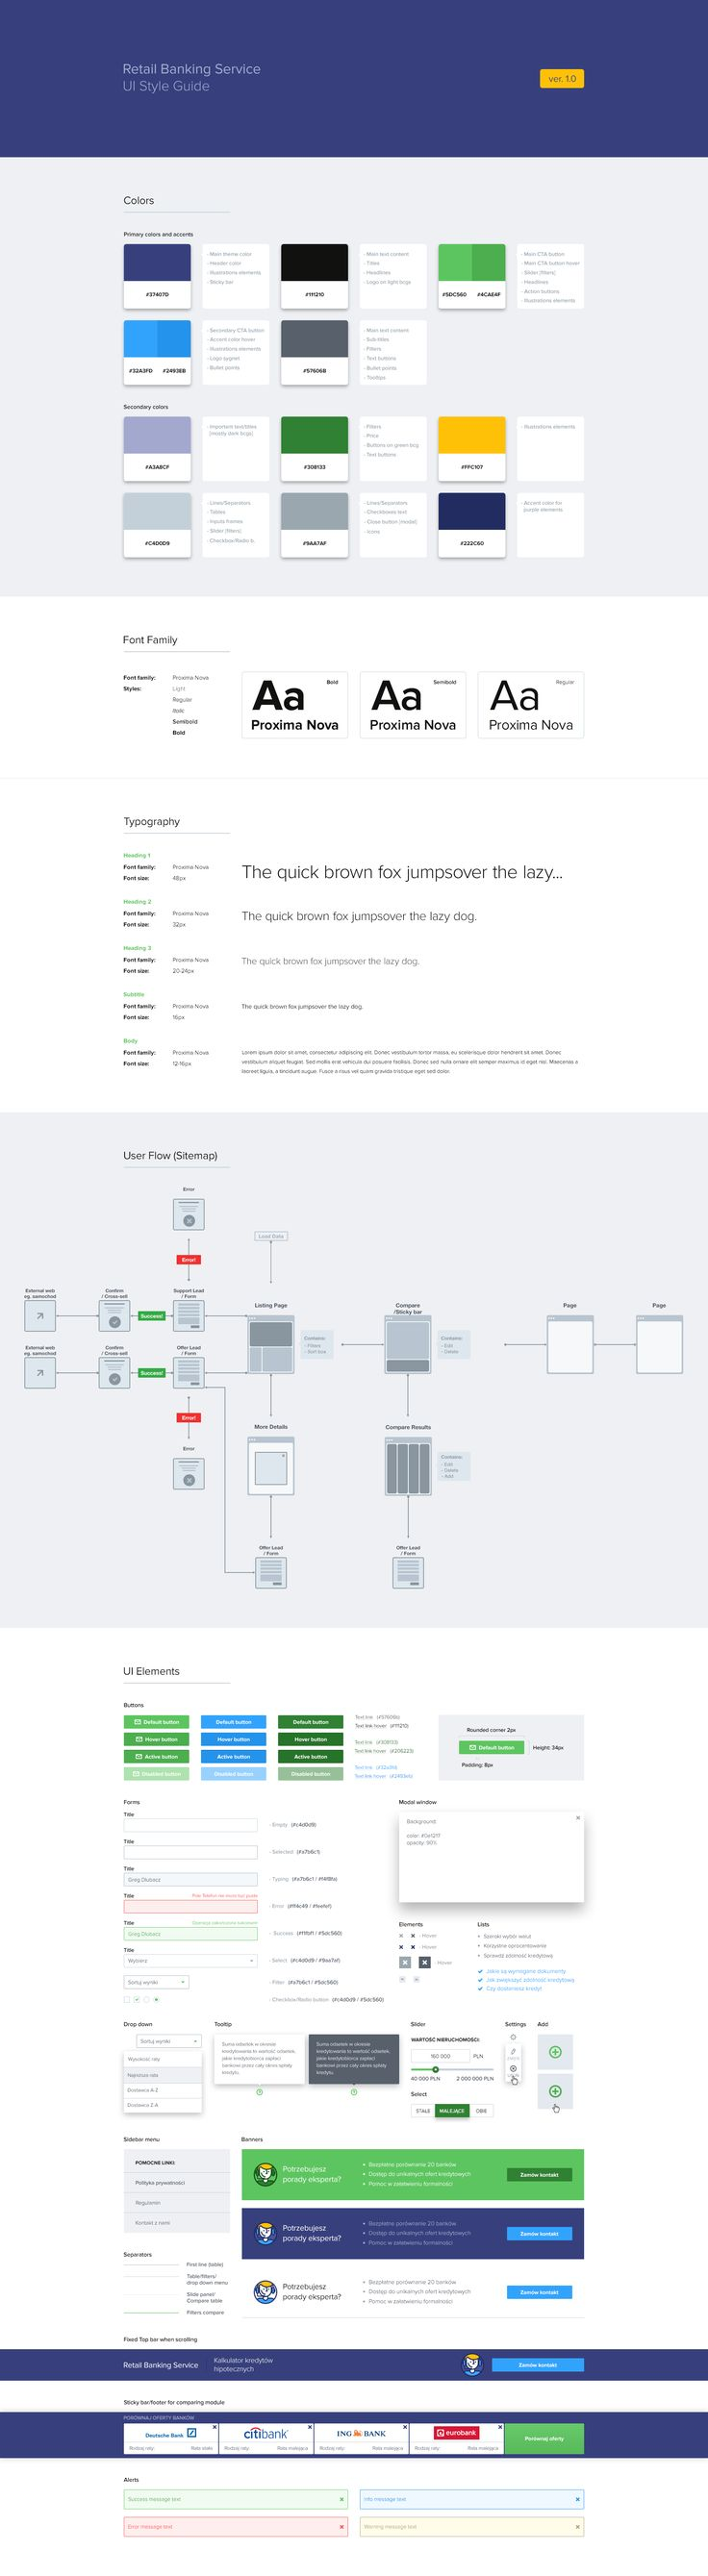 UI Style Guide by Greg Dlubacz in Retail Banking Service